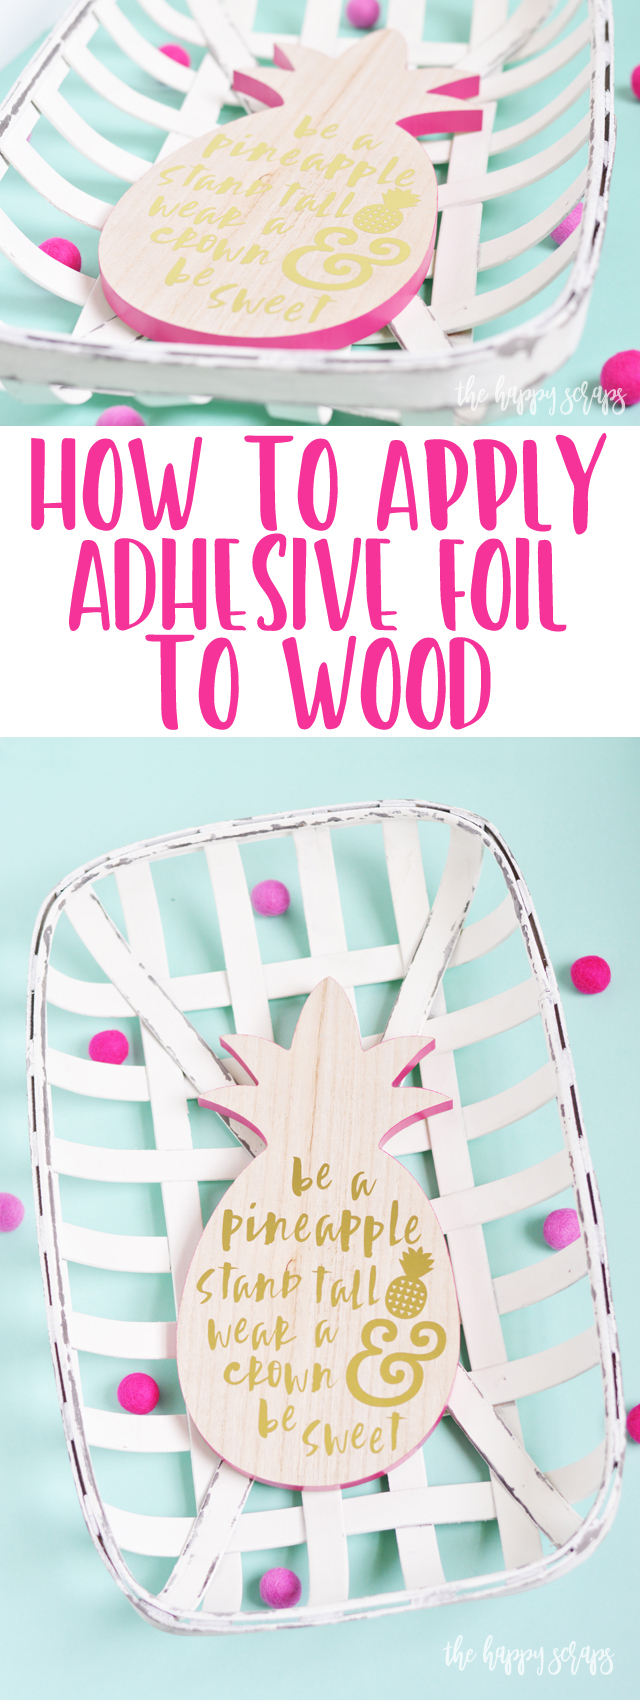 Have you ever wondered How to Apply Adhesive Foil to Wood? Well, I'm showing you. Stop by and get the details. It's so simple!